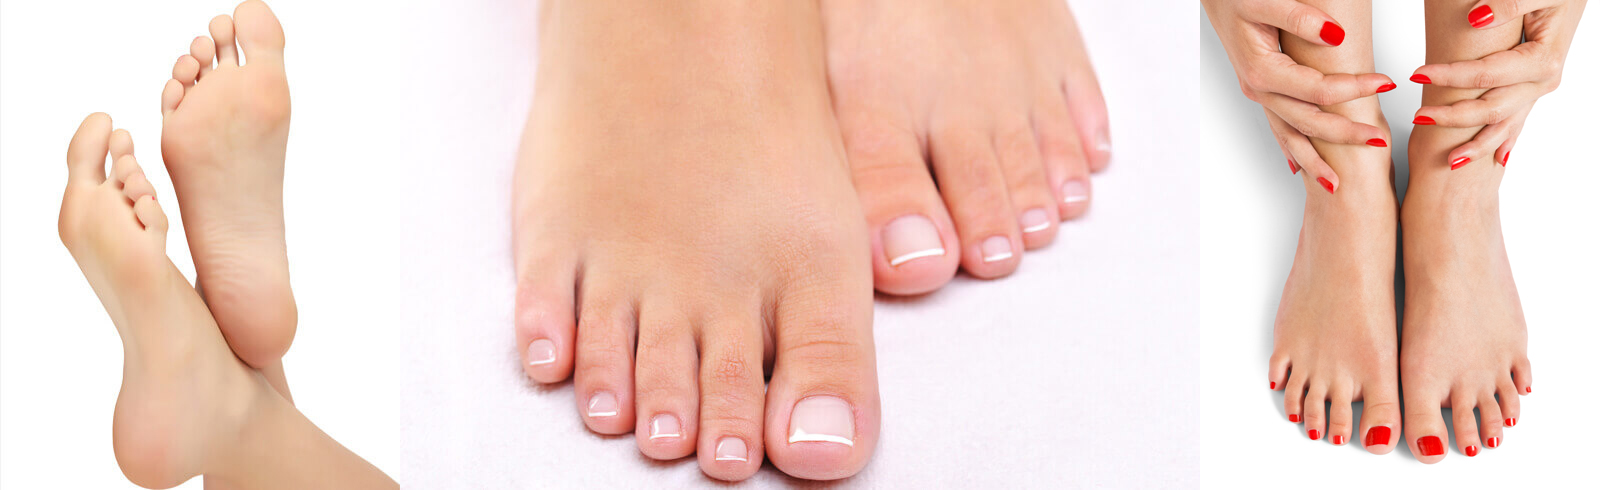 Friendly Foot Care Reviews and Dr. Nirenberg Reviews